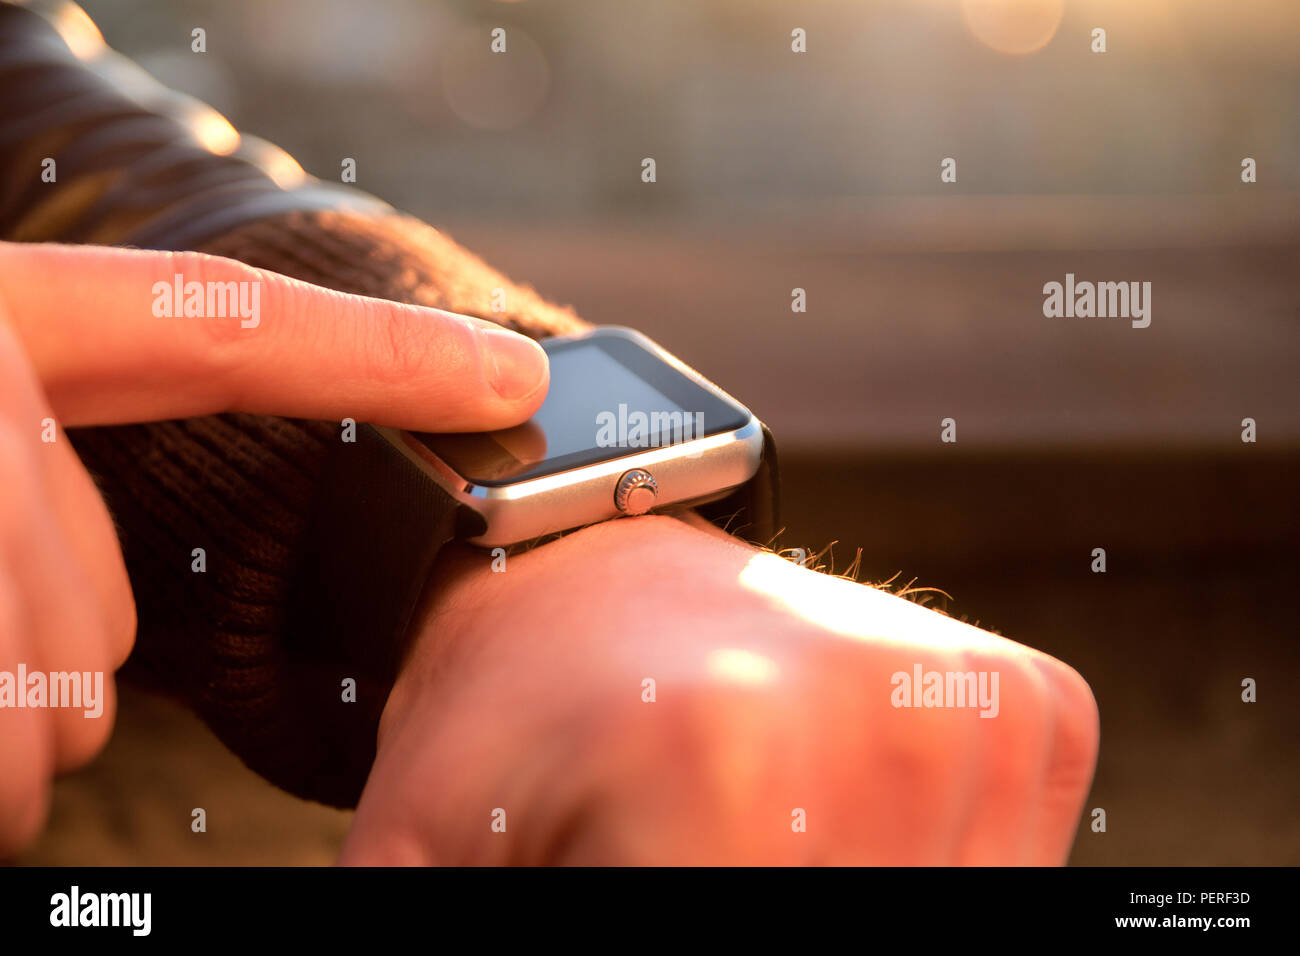 Smartwatch  touchscreen on men's hand and the other hand is working on it. A man using his smartwatch app. Close up hands. - Stock Image